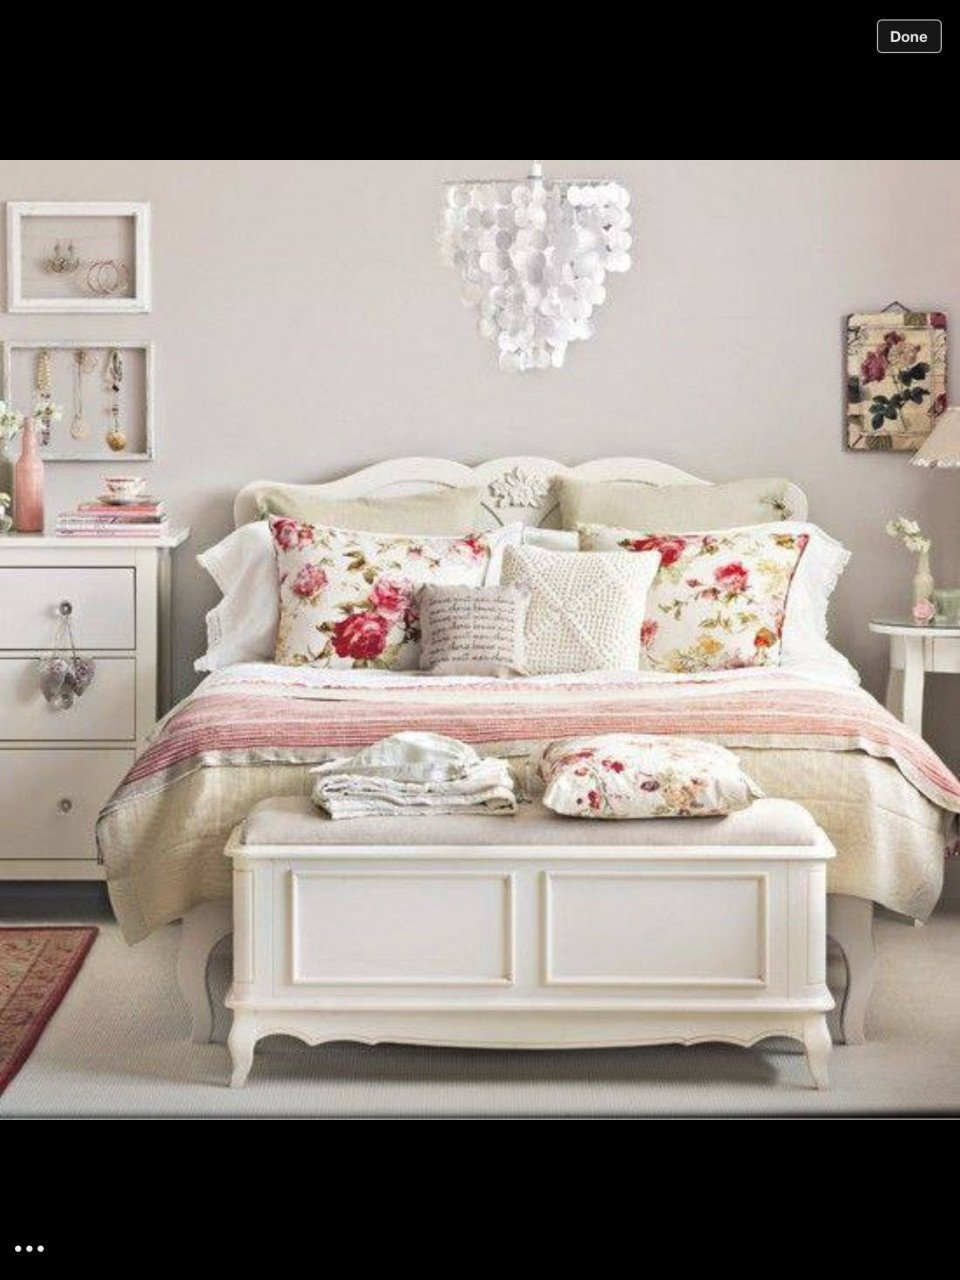 Cool Bedroom Decorating Ideas Beautiful ashley Furniture Canopy Bedroom Sets – Bunk Bed Ideas From